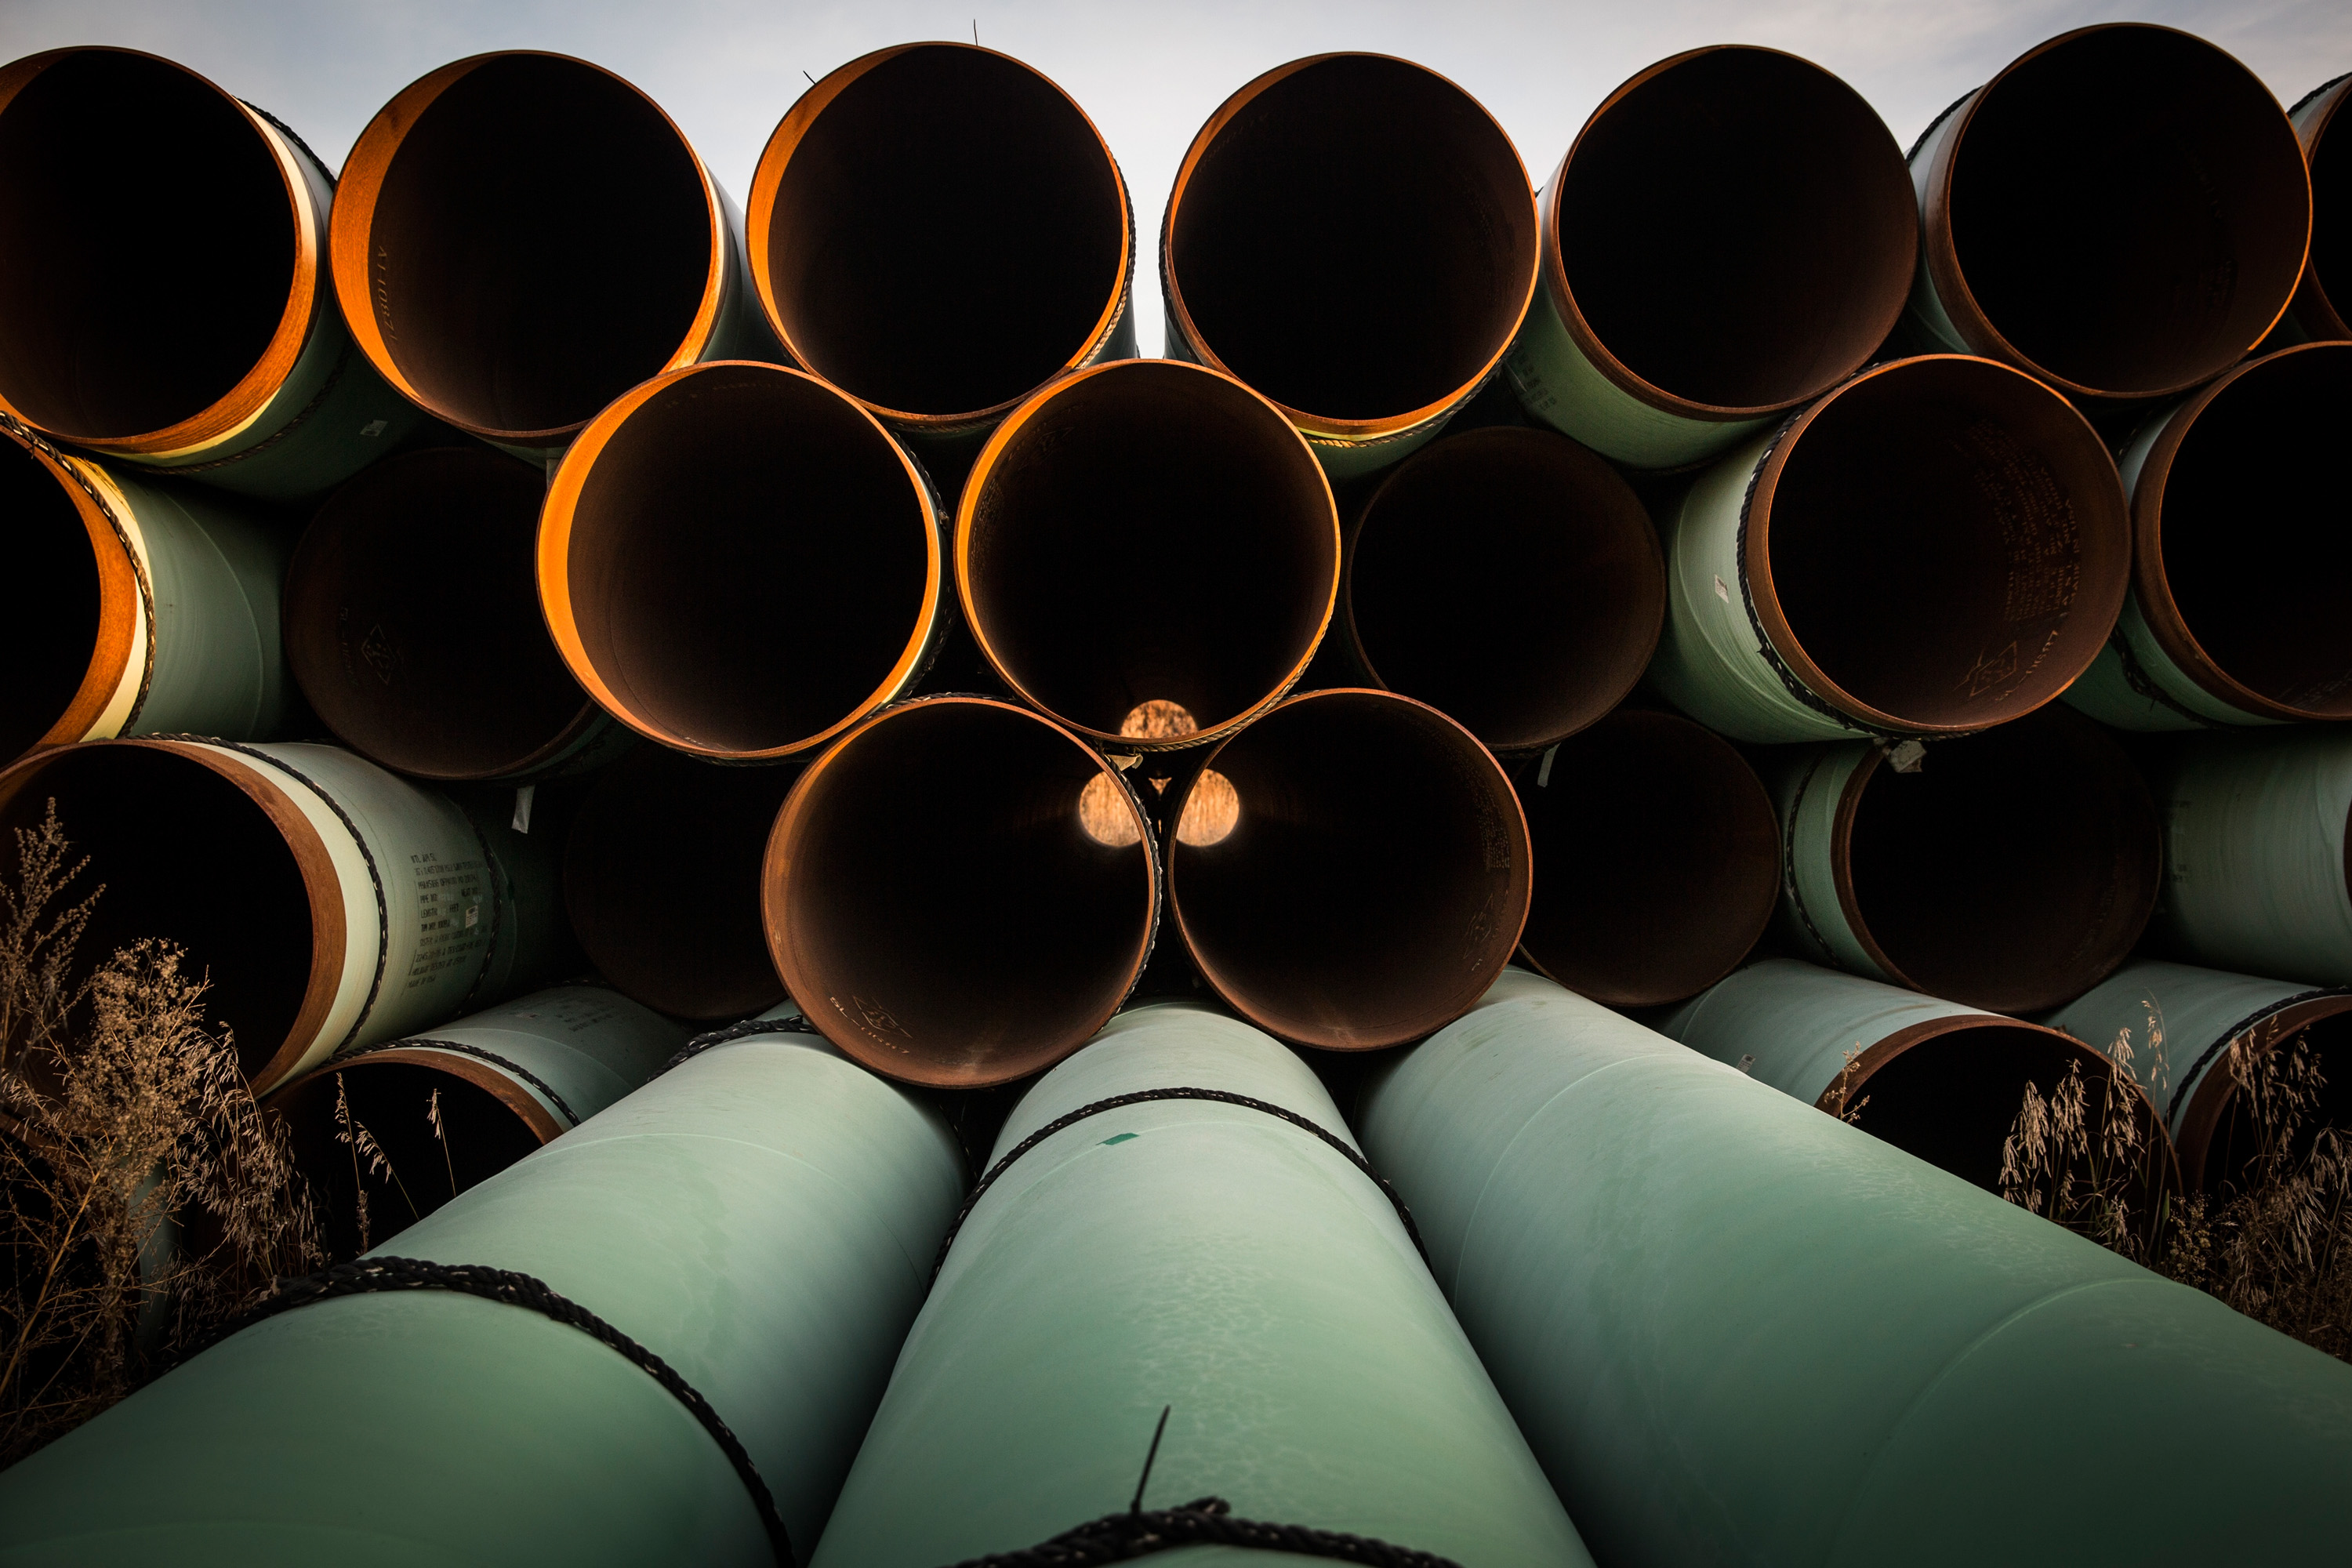 Miles of unused pipe, prepared for the proposed Keystone XL pipeline, sit in a lot on October 14, 2014 outside Gascoyne, North Dakota.